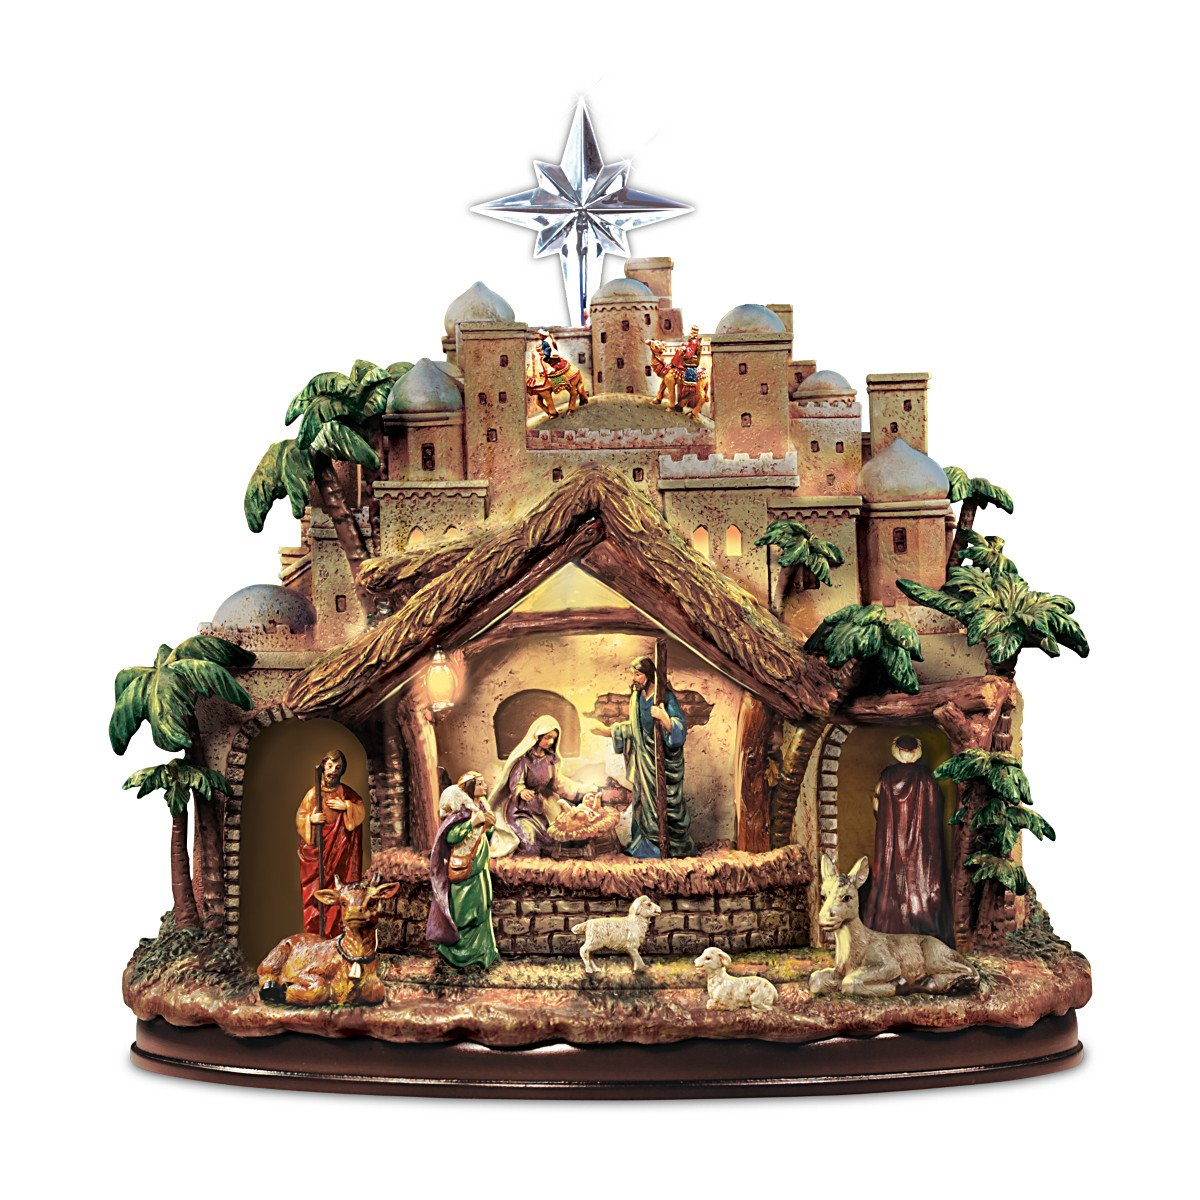 Thomas Kinkade Following the Star Nativity Sculpture Lights As Figures Move and the Musical Nativity Plays 4 Beloved Carols! - By Hawthorne Village 14-01680-001